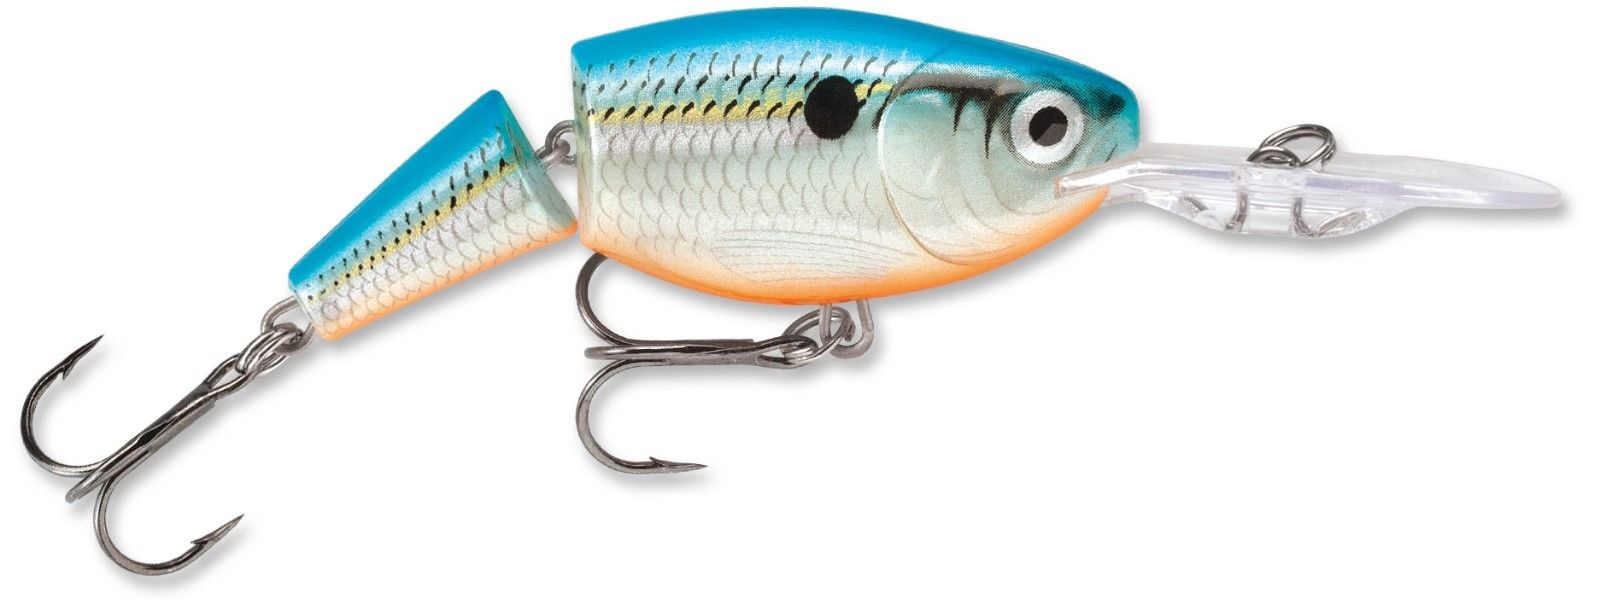 Rapala Jointed Shad Rap 05 Deep Diving Crankbait